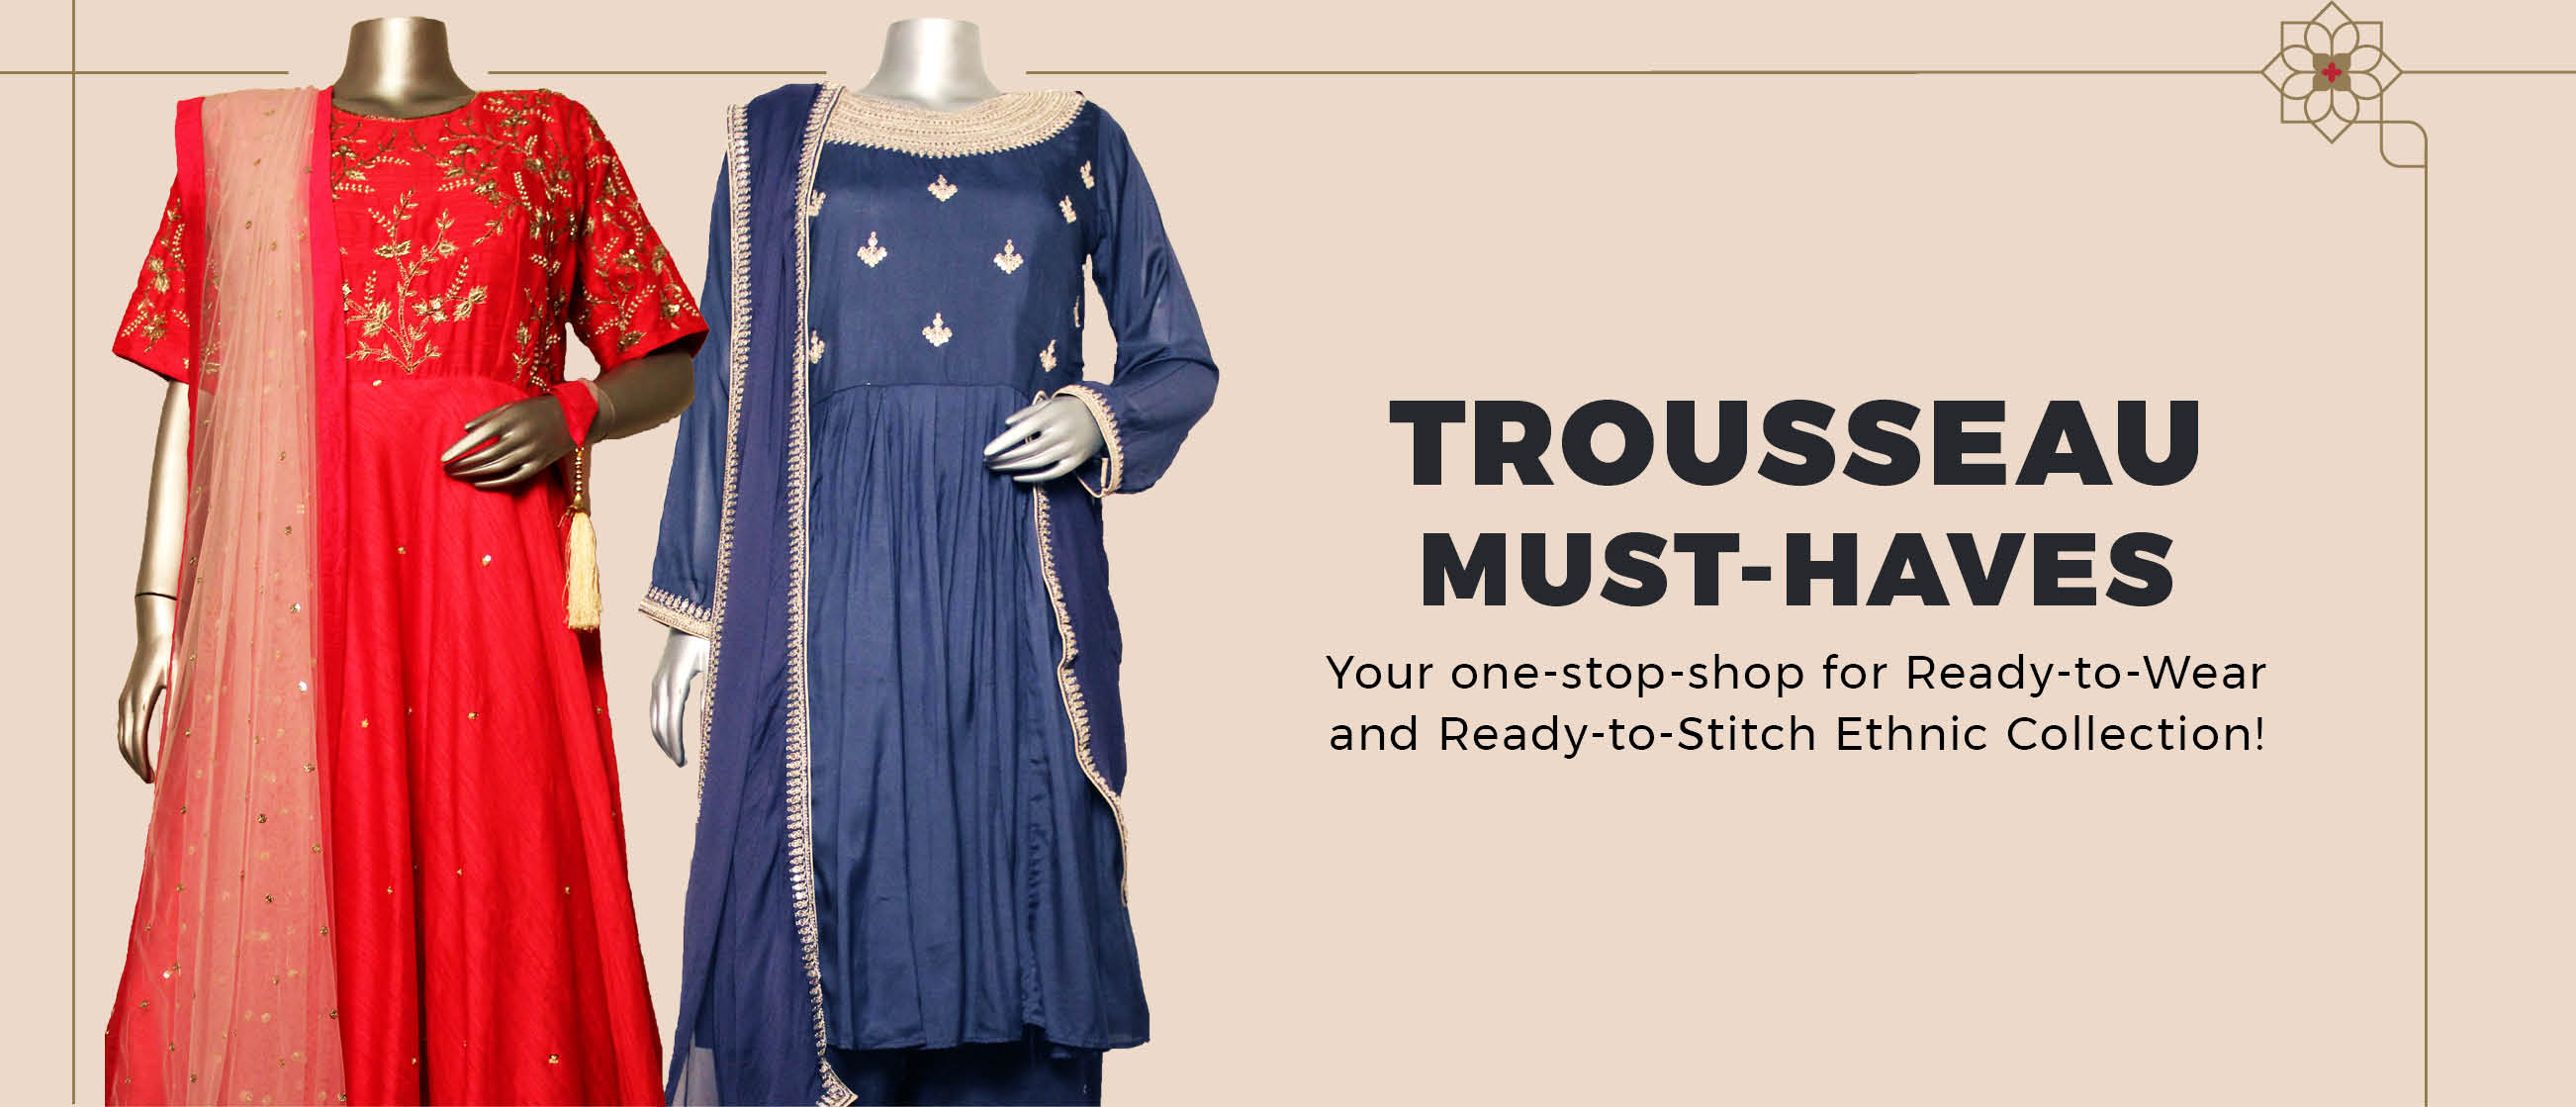 Trousseau-Must-Haves-min.jpg